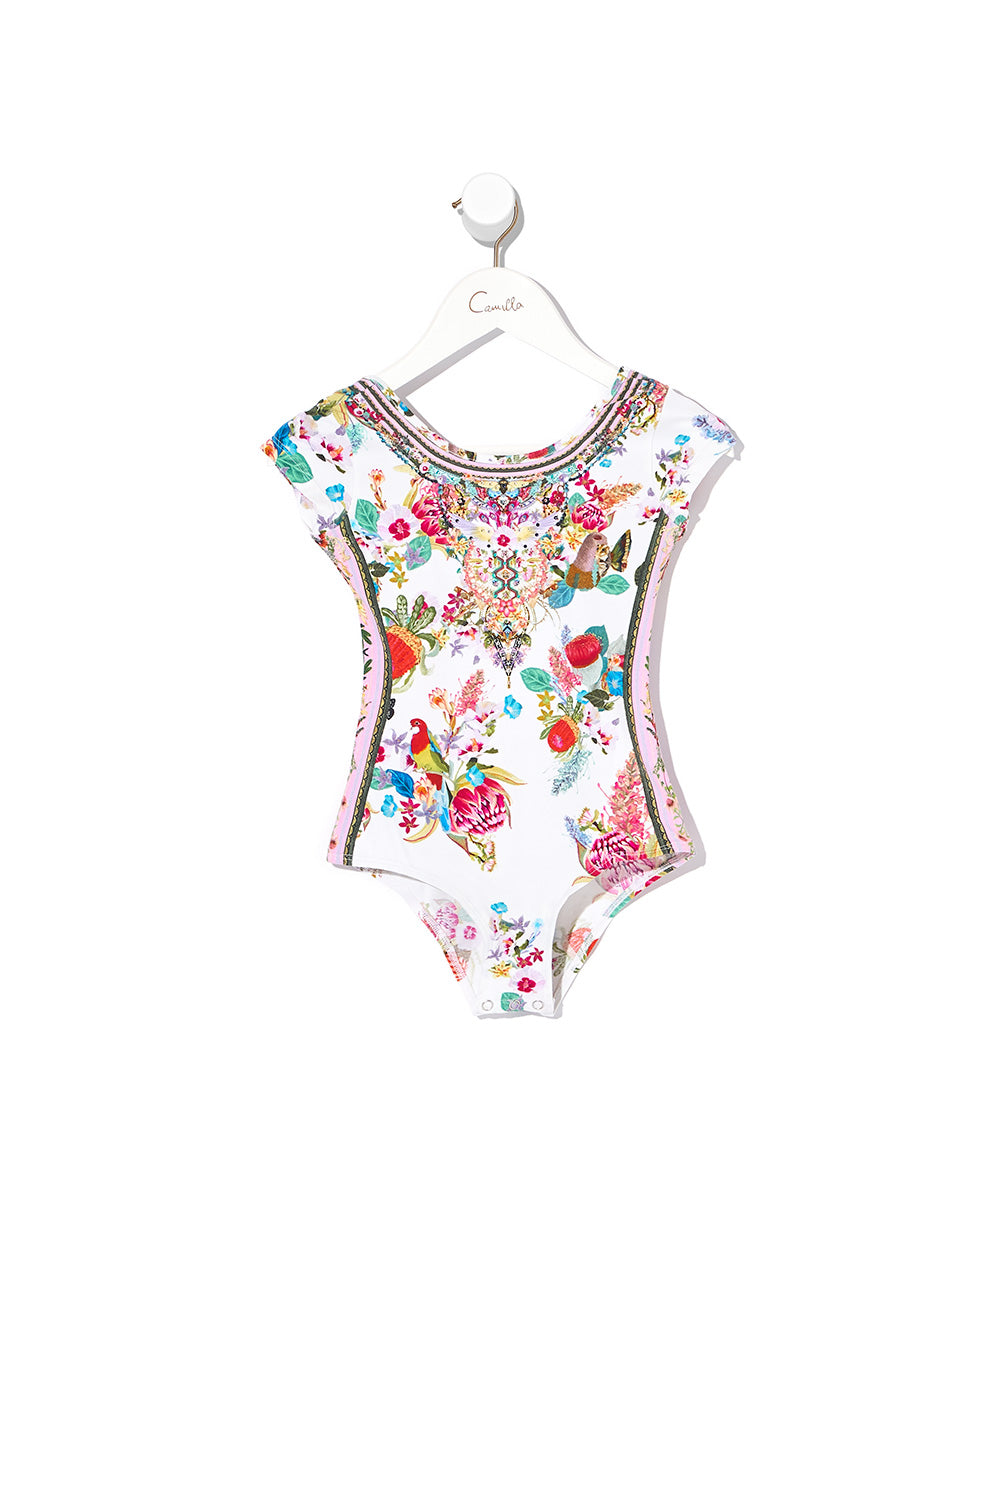 INFANTS LEOTARD HOMEWARD FOUND